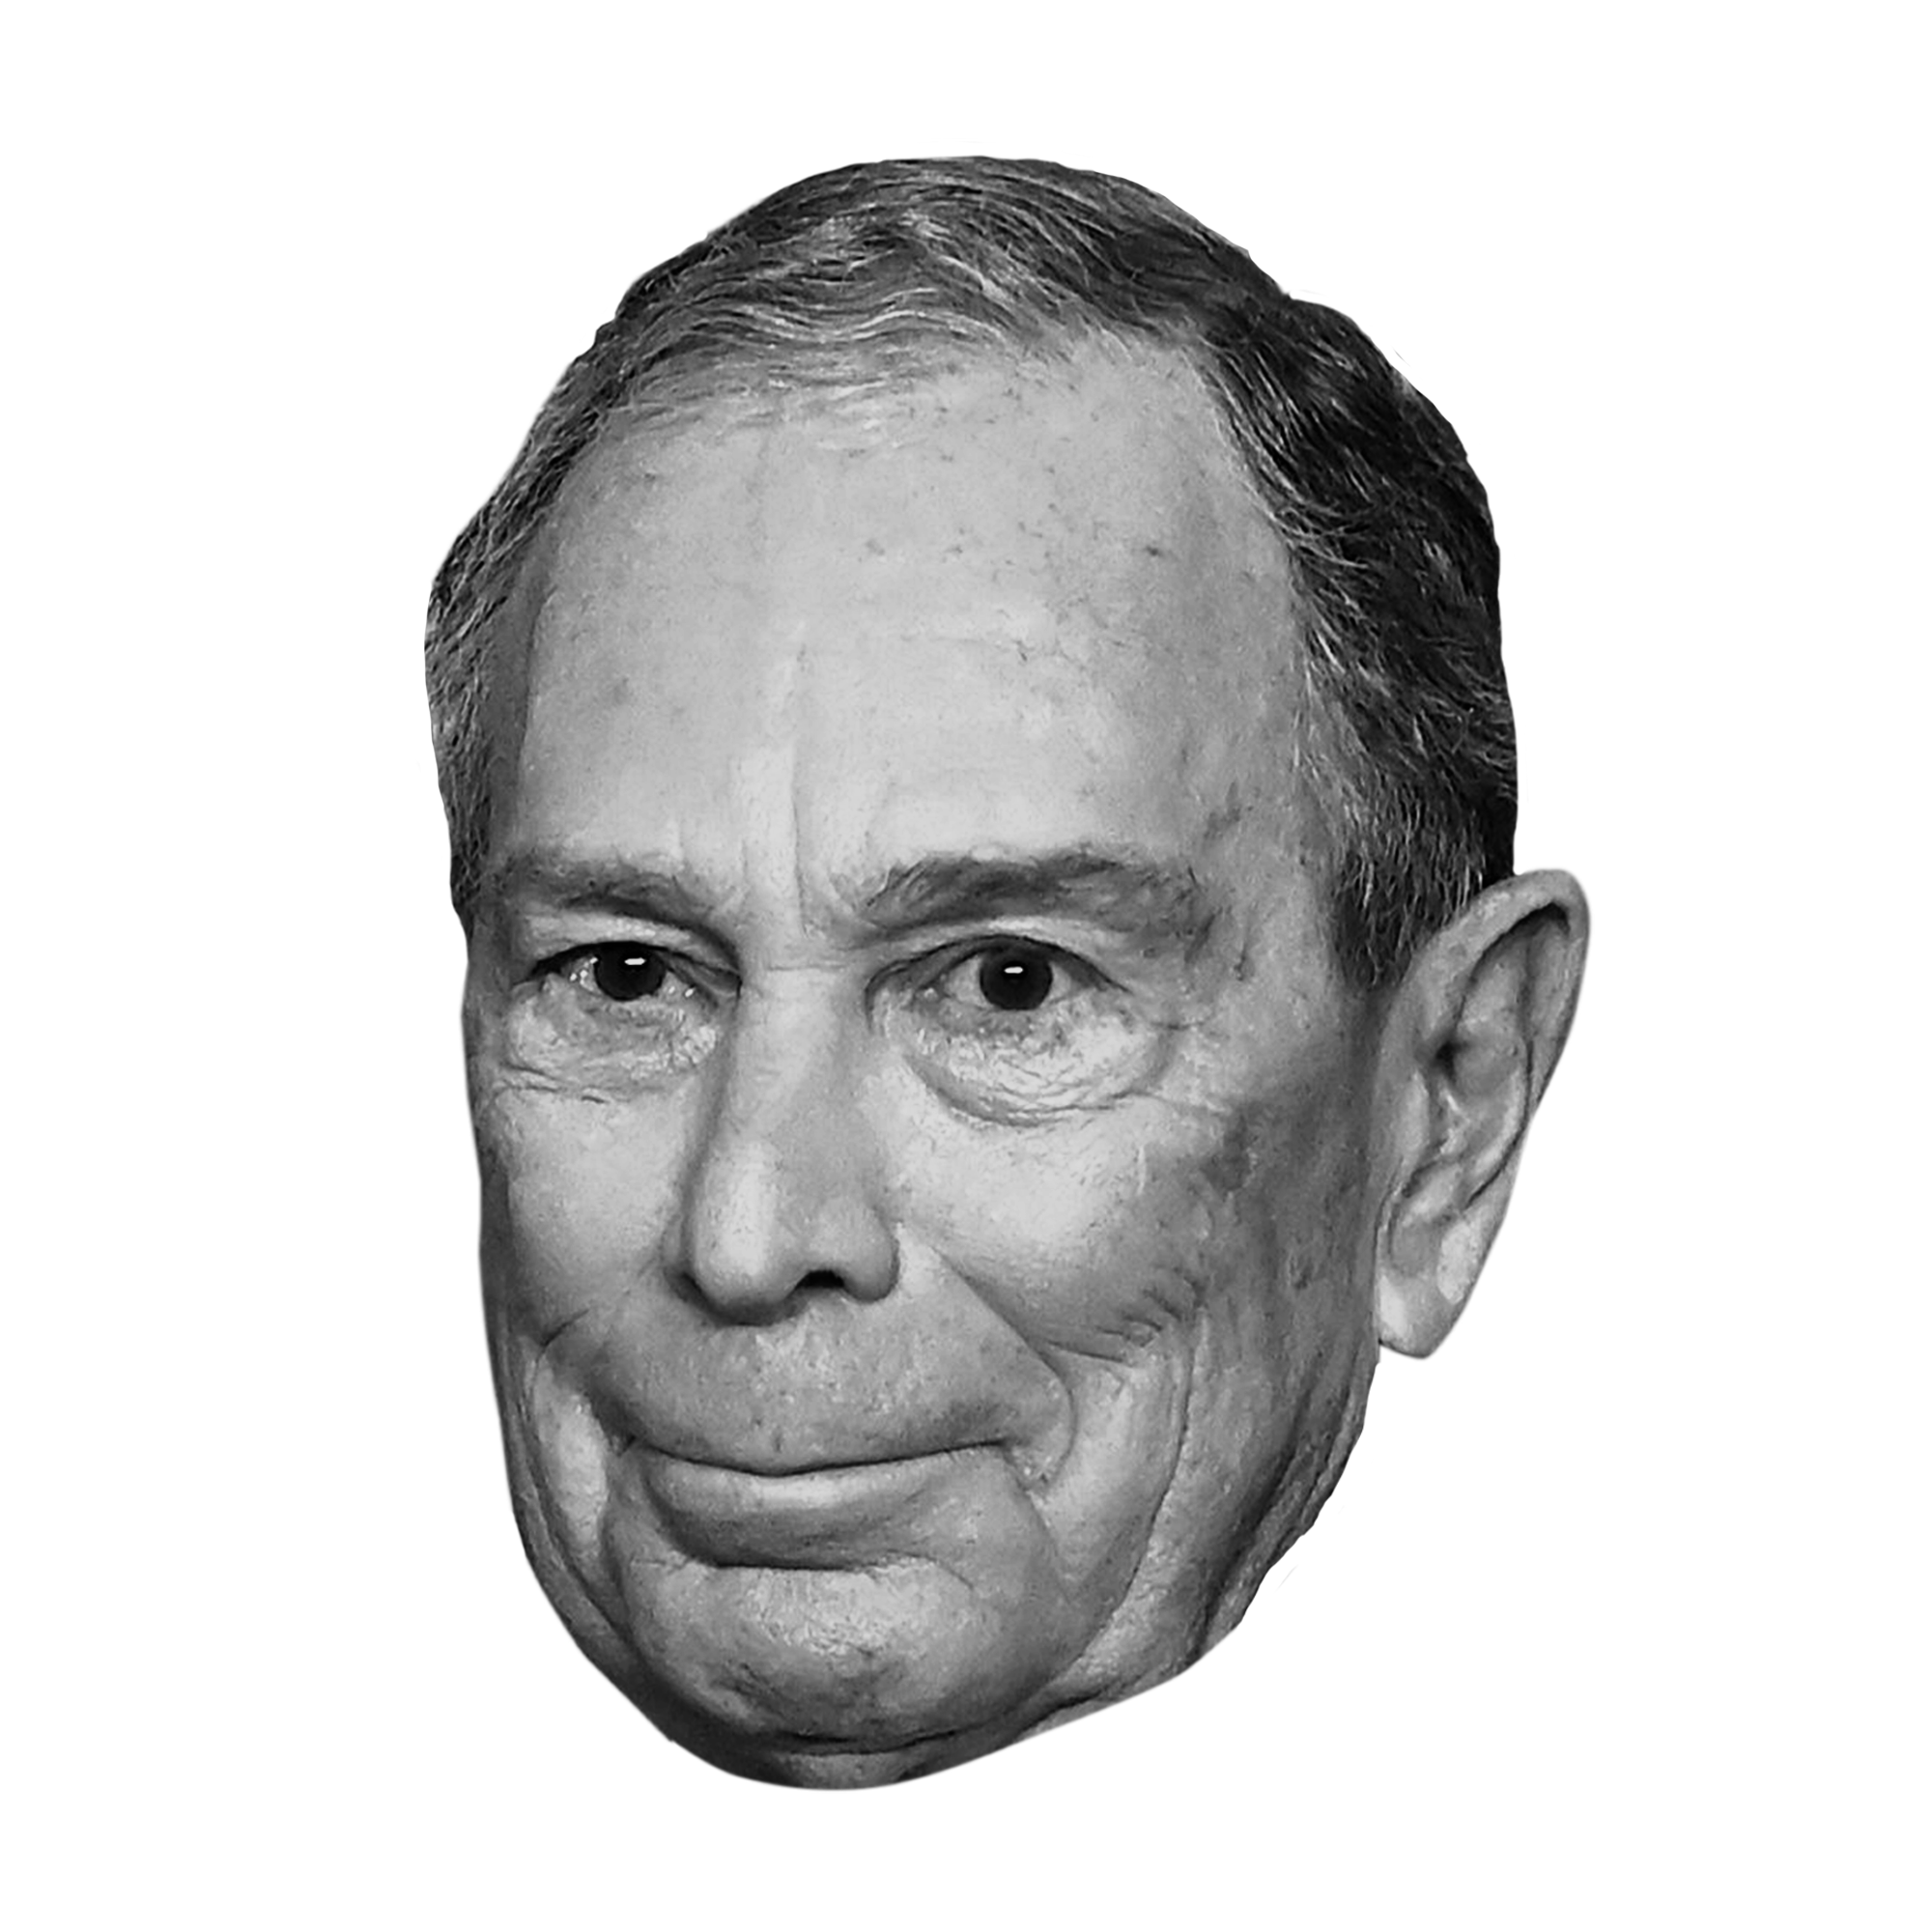 michael bloomberg sillo bw - The Secret IRS Files: Trove of Never-Before-Seen Records Reveal How the Wealthiest Avoid Income Tax